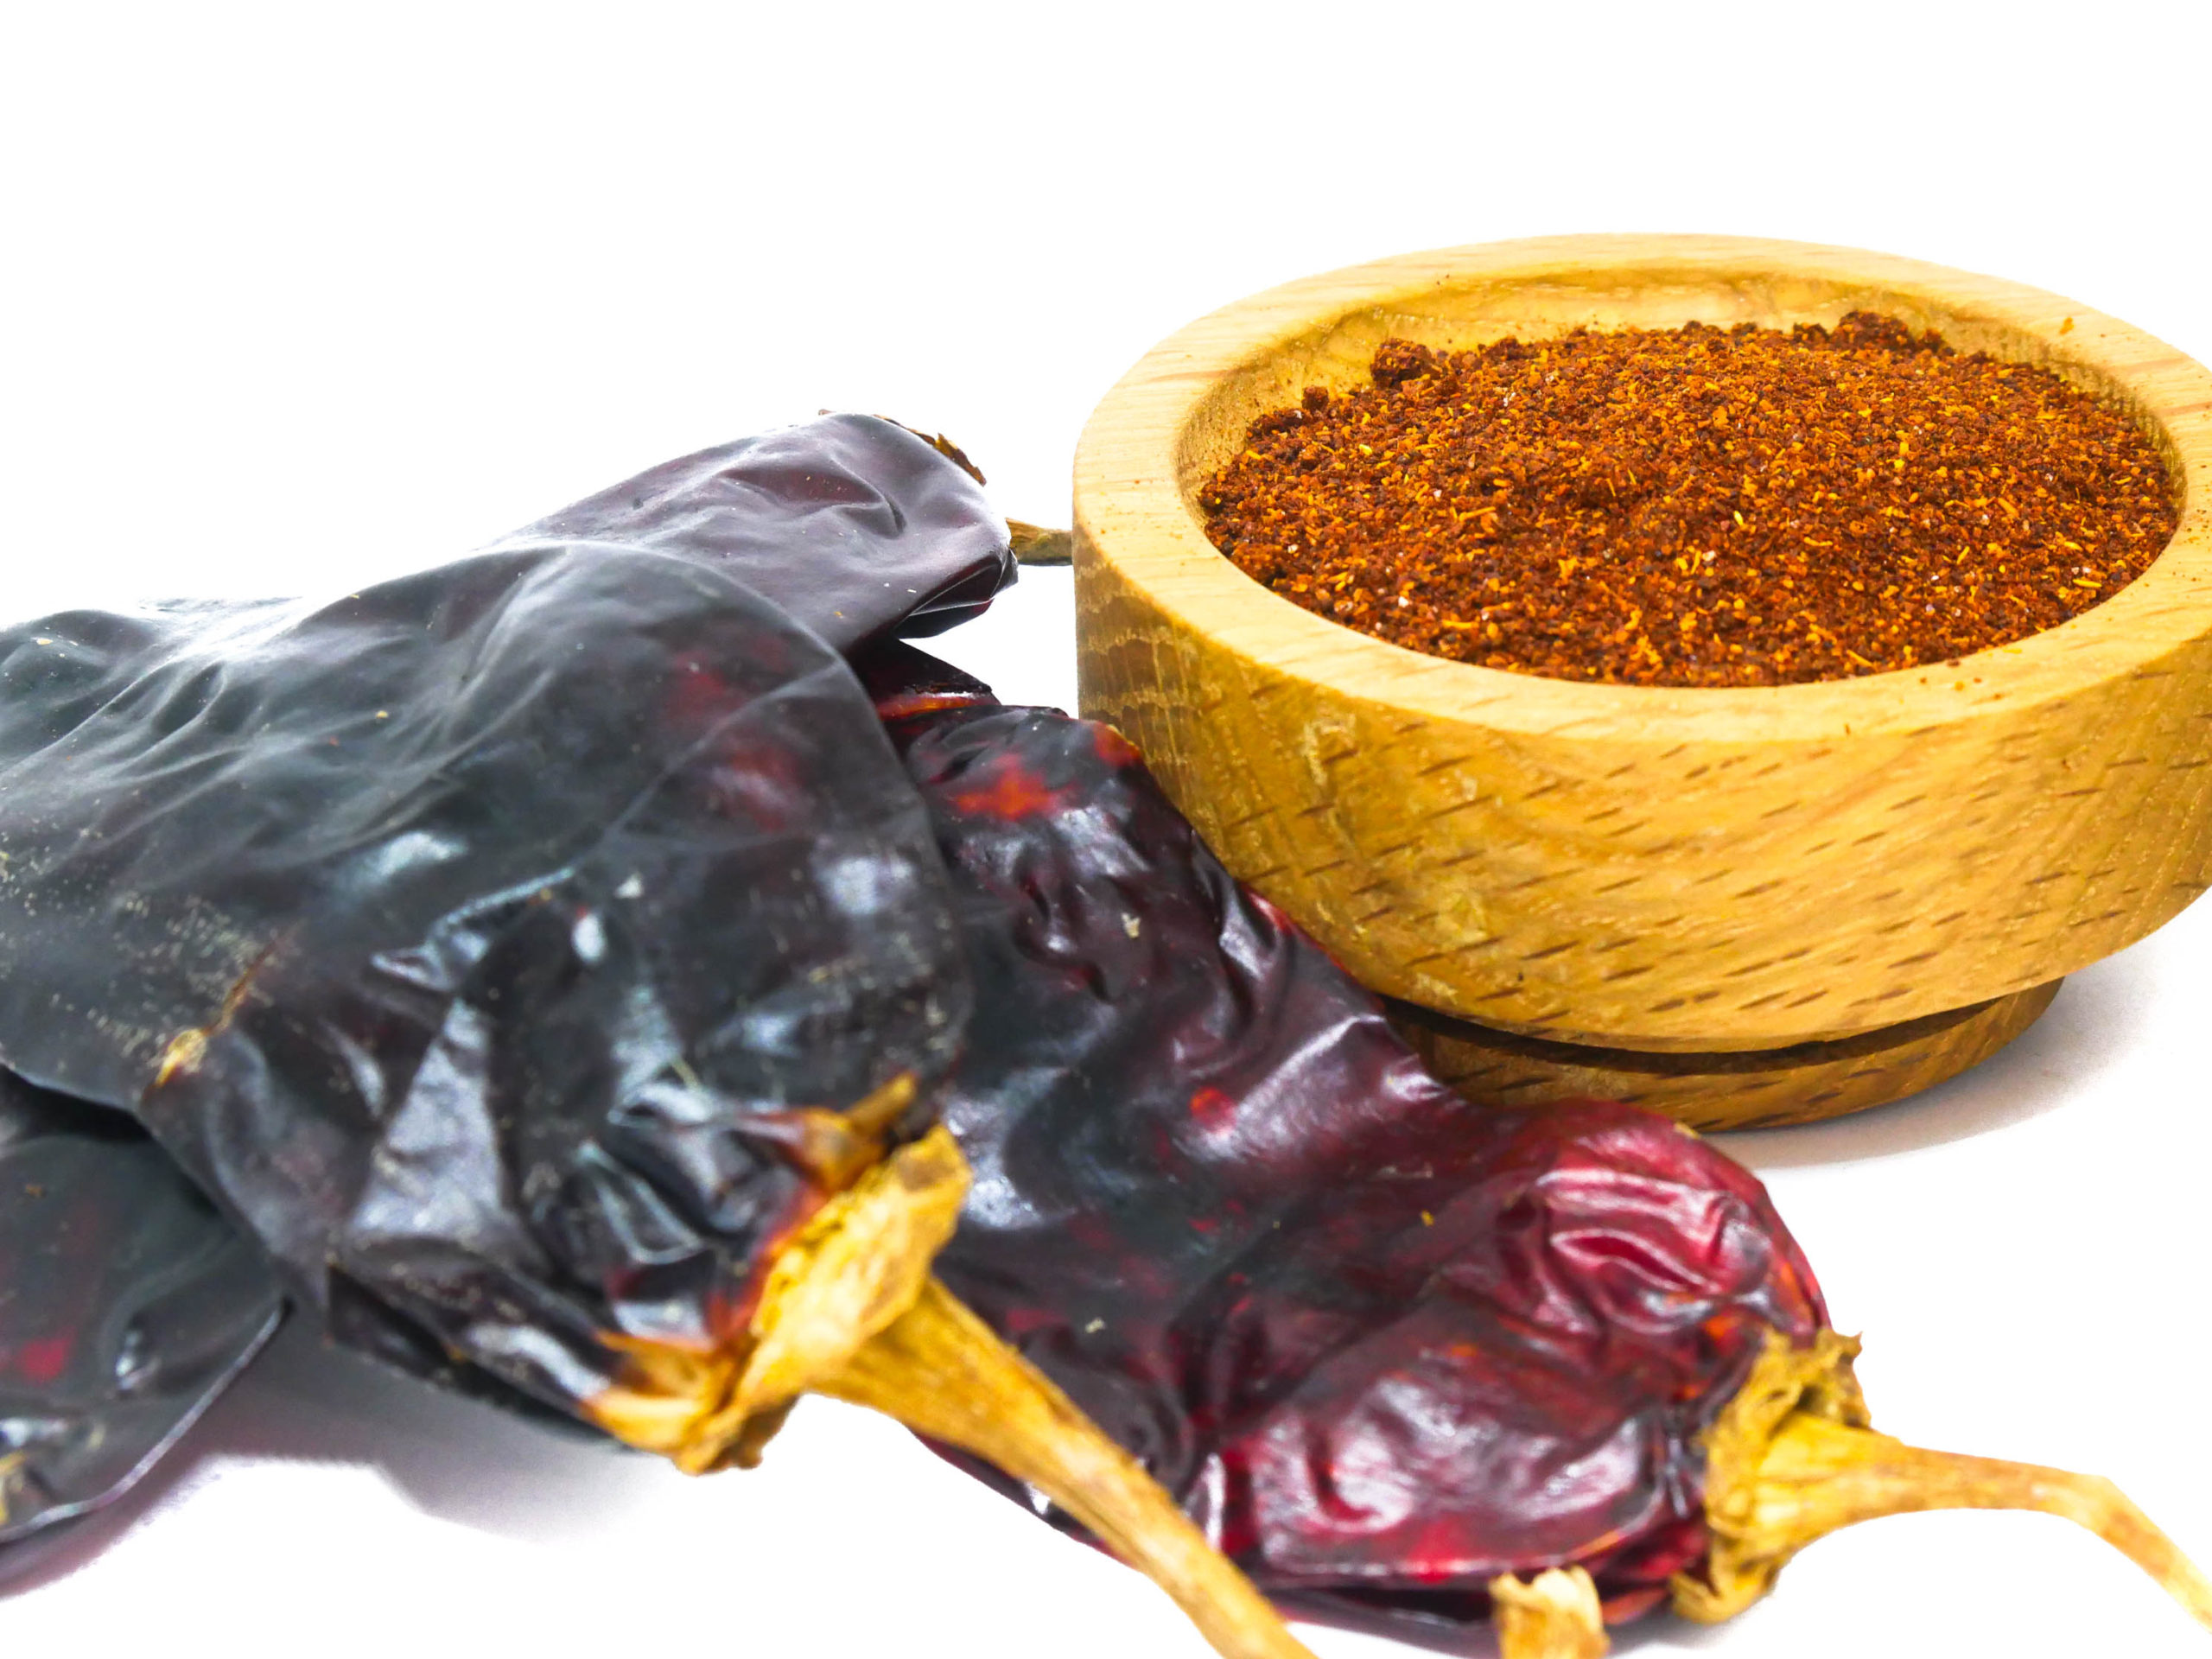 Order whole Anaheim Chile Peppers from the Natural Spot